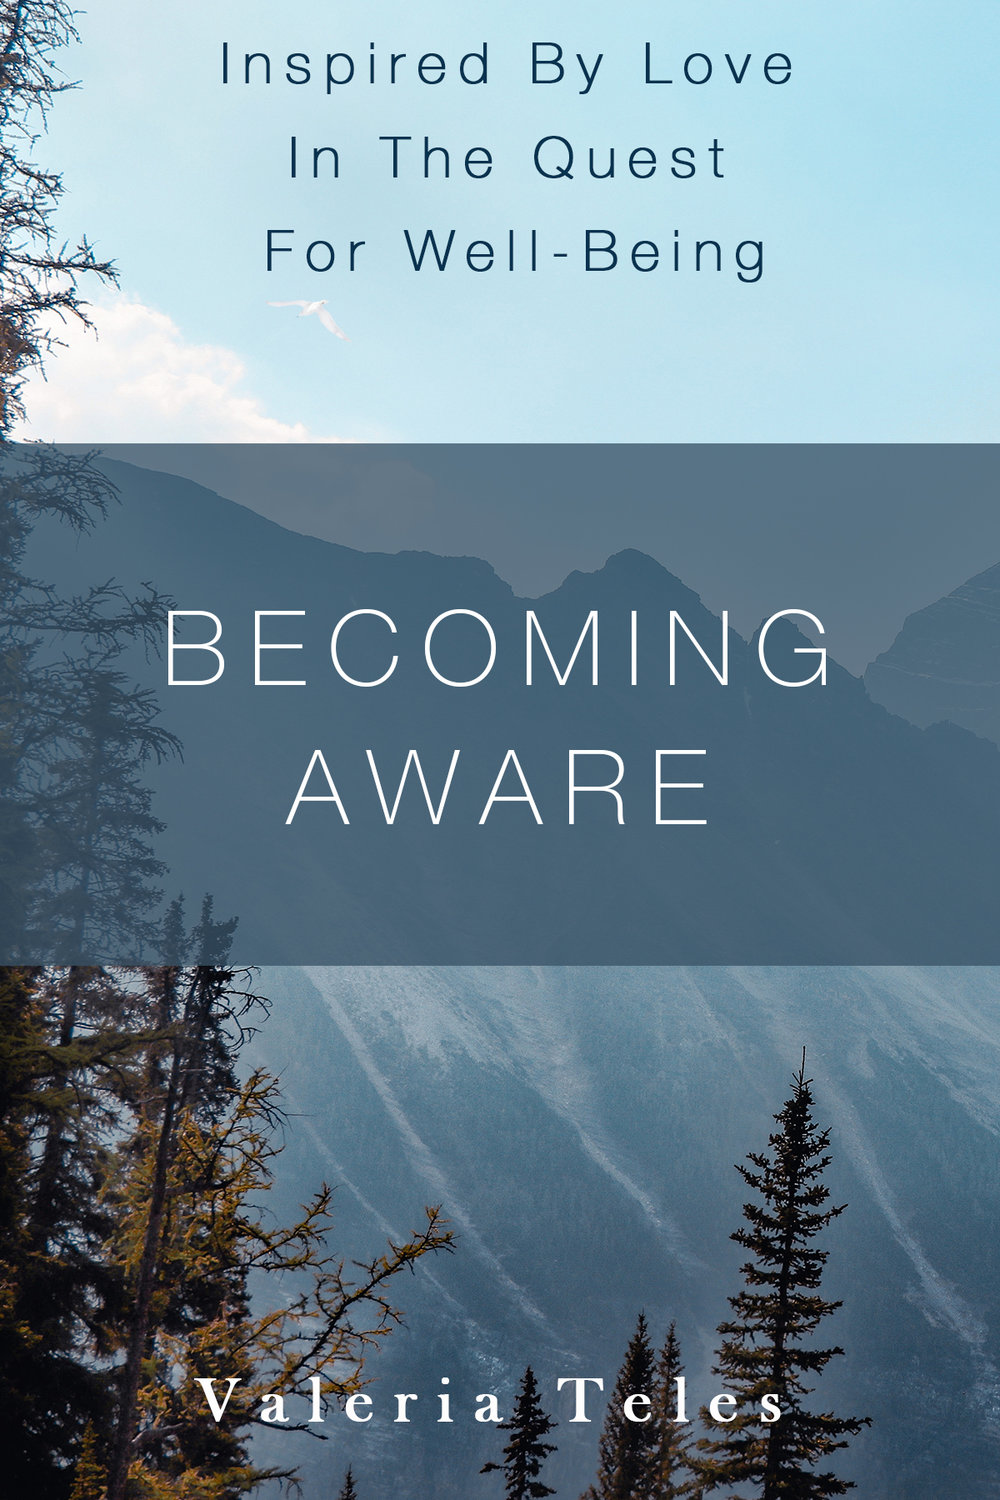 "Becoming Aware - ""Awareness sees what can't be seen with the eye or understood by the mind. It creates a space where body and mind dance with harmony and grace."" — V. TelesAwareness (that which knows) watches — doesn't act upon, or react to, anything that is perceived.One who is aware, can distinguish what is real from what is not.Awareness is the master of masters, that which teaches without teaching. It distinguishes the opposites.Is awareness key to Well-Being?How is fear the opposite of love?How can addiction become a gift?How are we humans indefinitely and deeply connected?Becoming aware is a collection of thoughts, insights, ideas, and conversations inspired by love in the quest for truth and well-being."